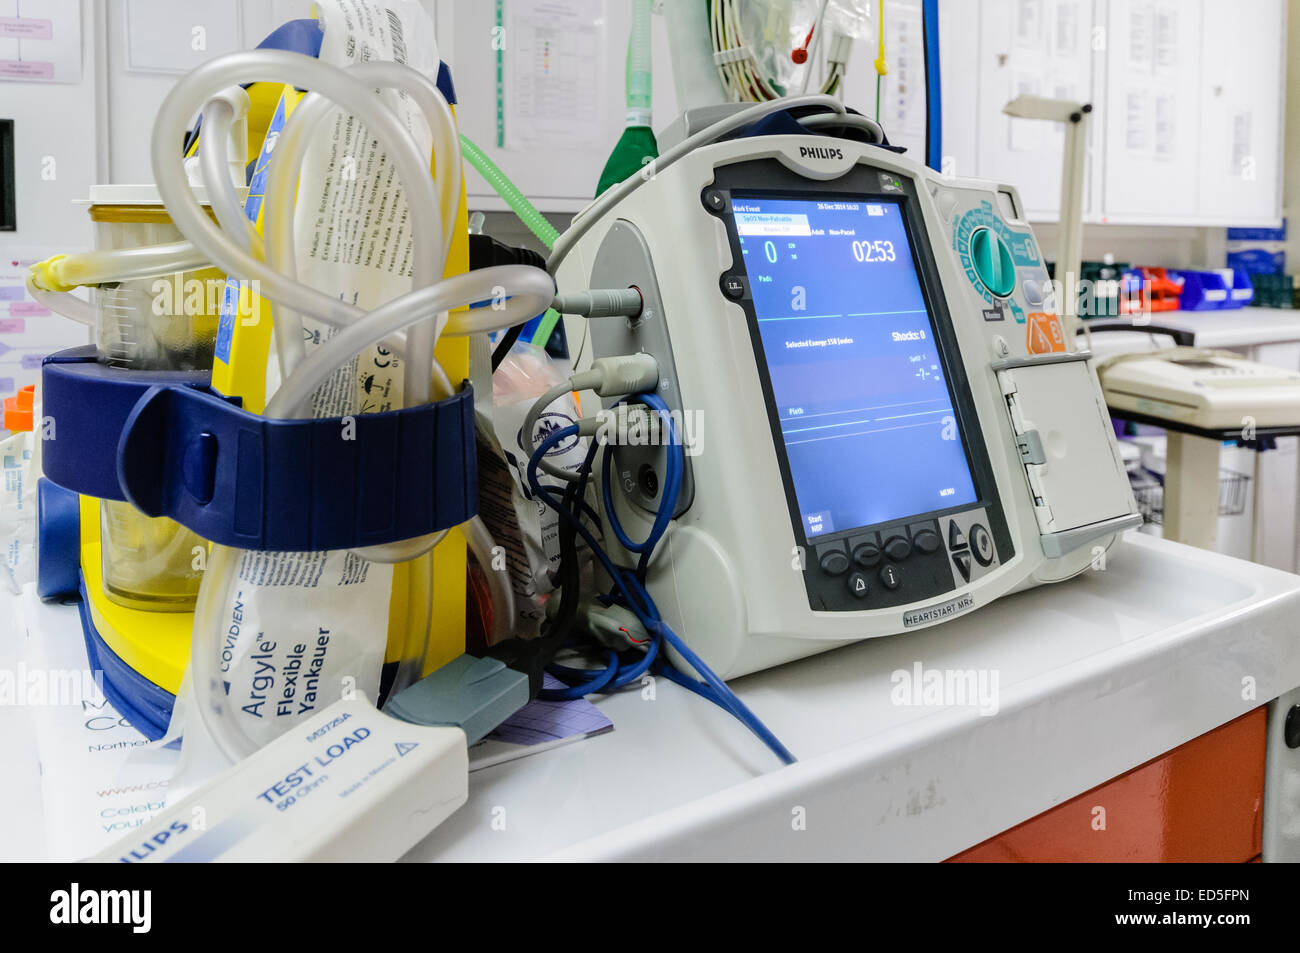 Defibrillator sitting ready for use on a hospital Crash Trolley. - Stock Image